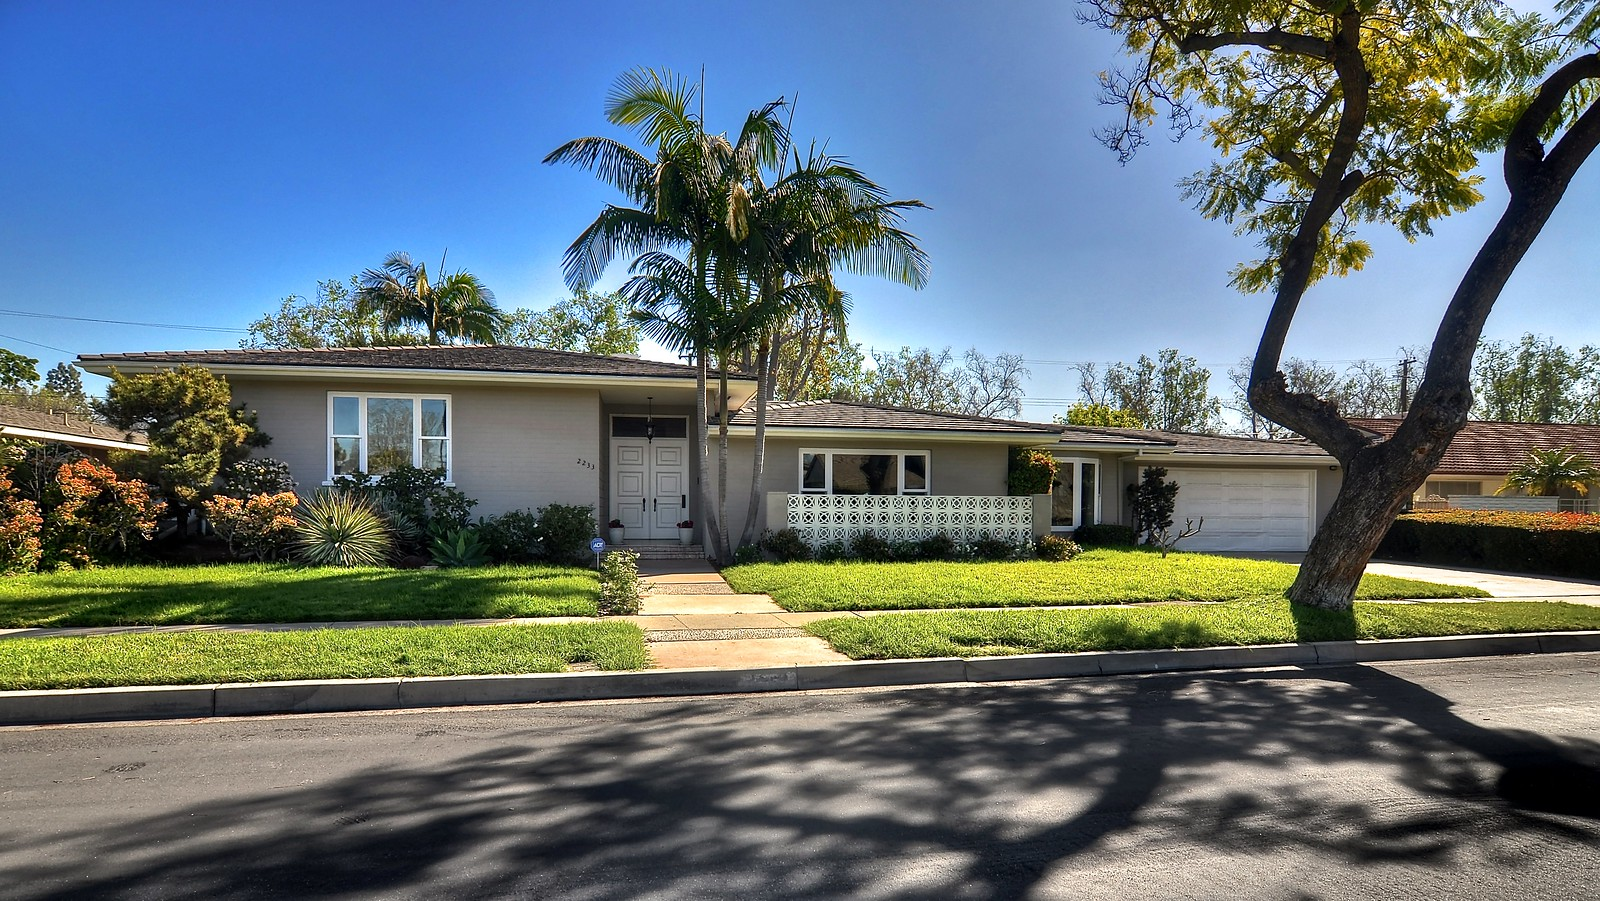 2233 N Westwood Ave | Open House Sunday 3/1 from 1-4 pm